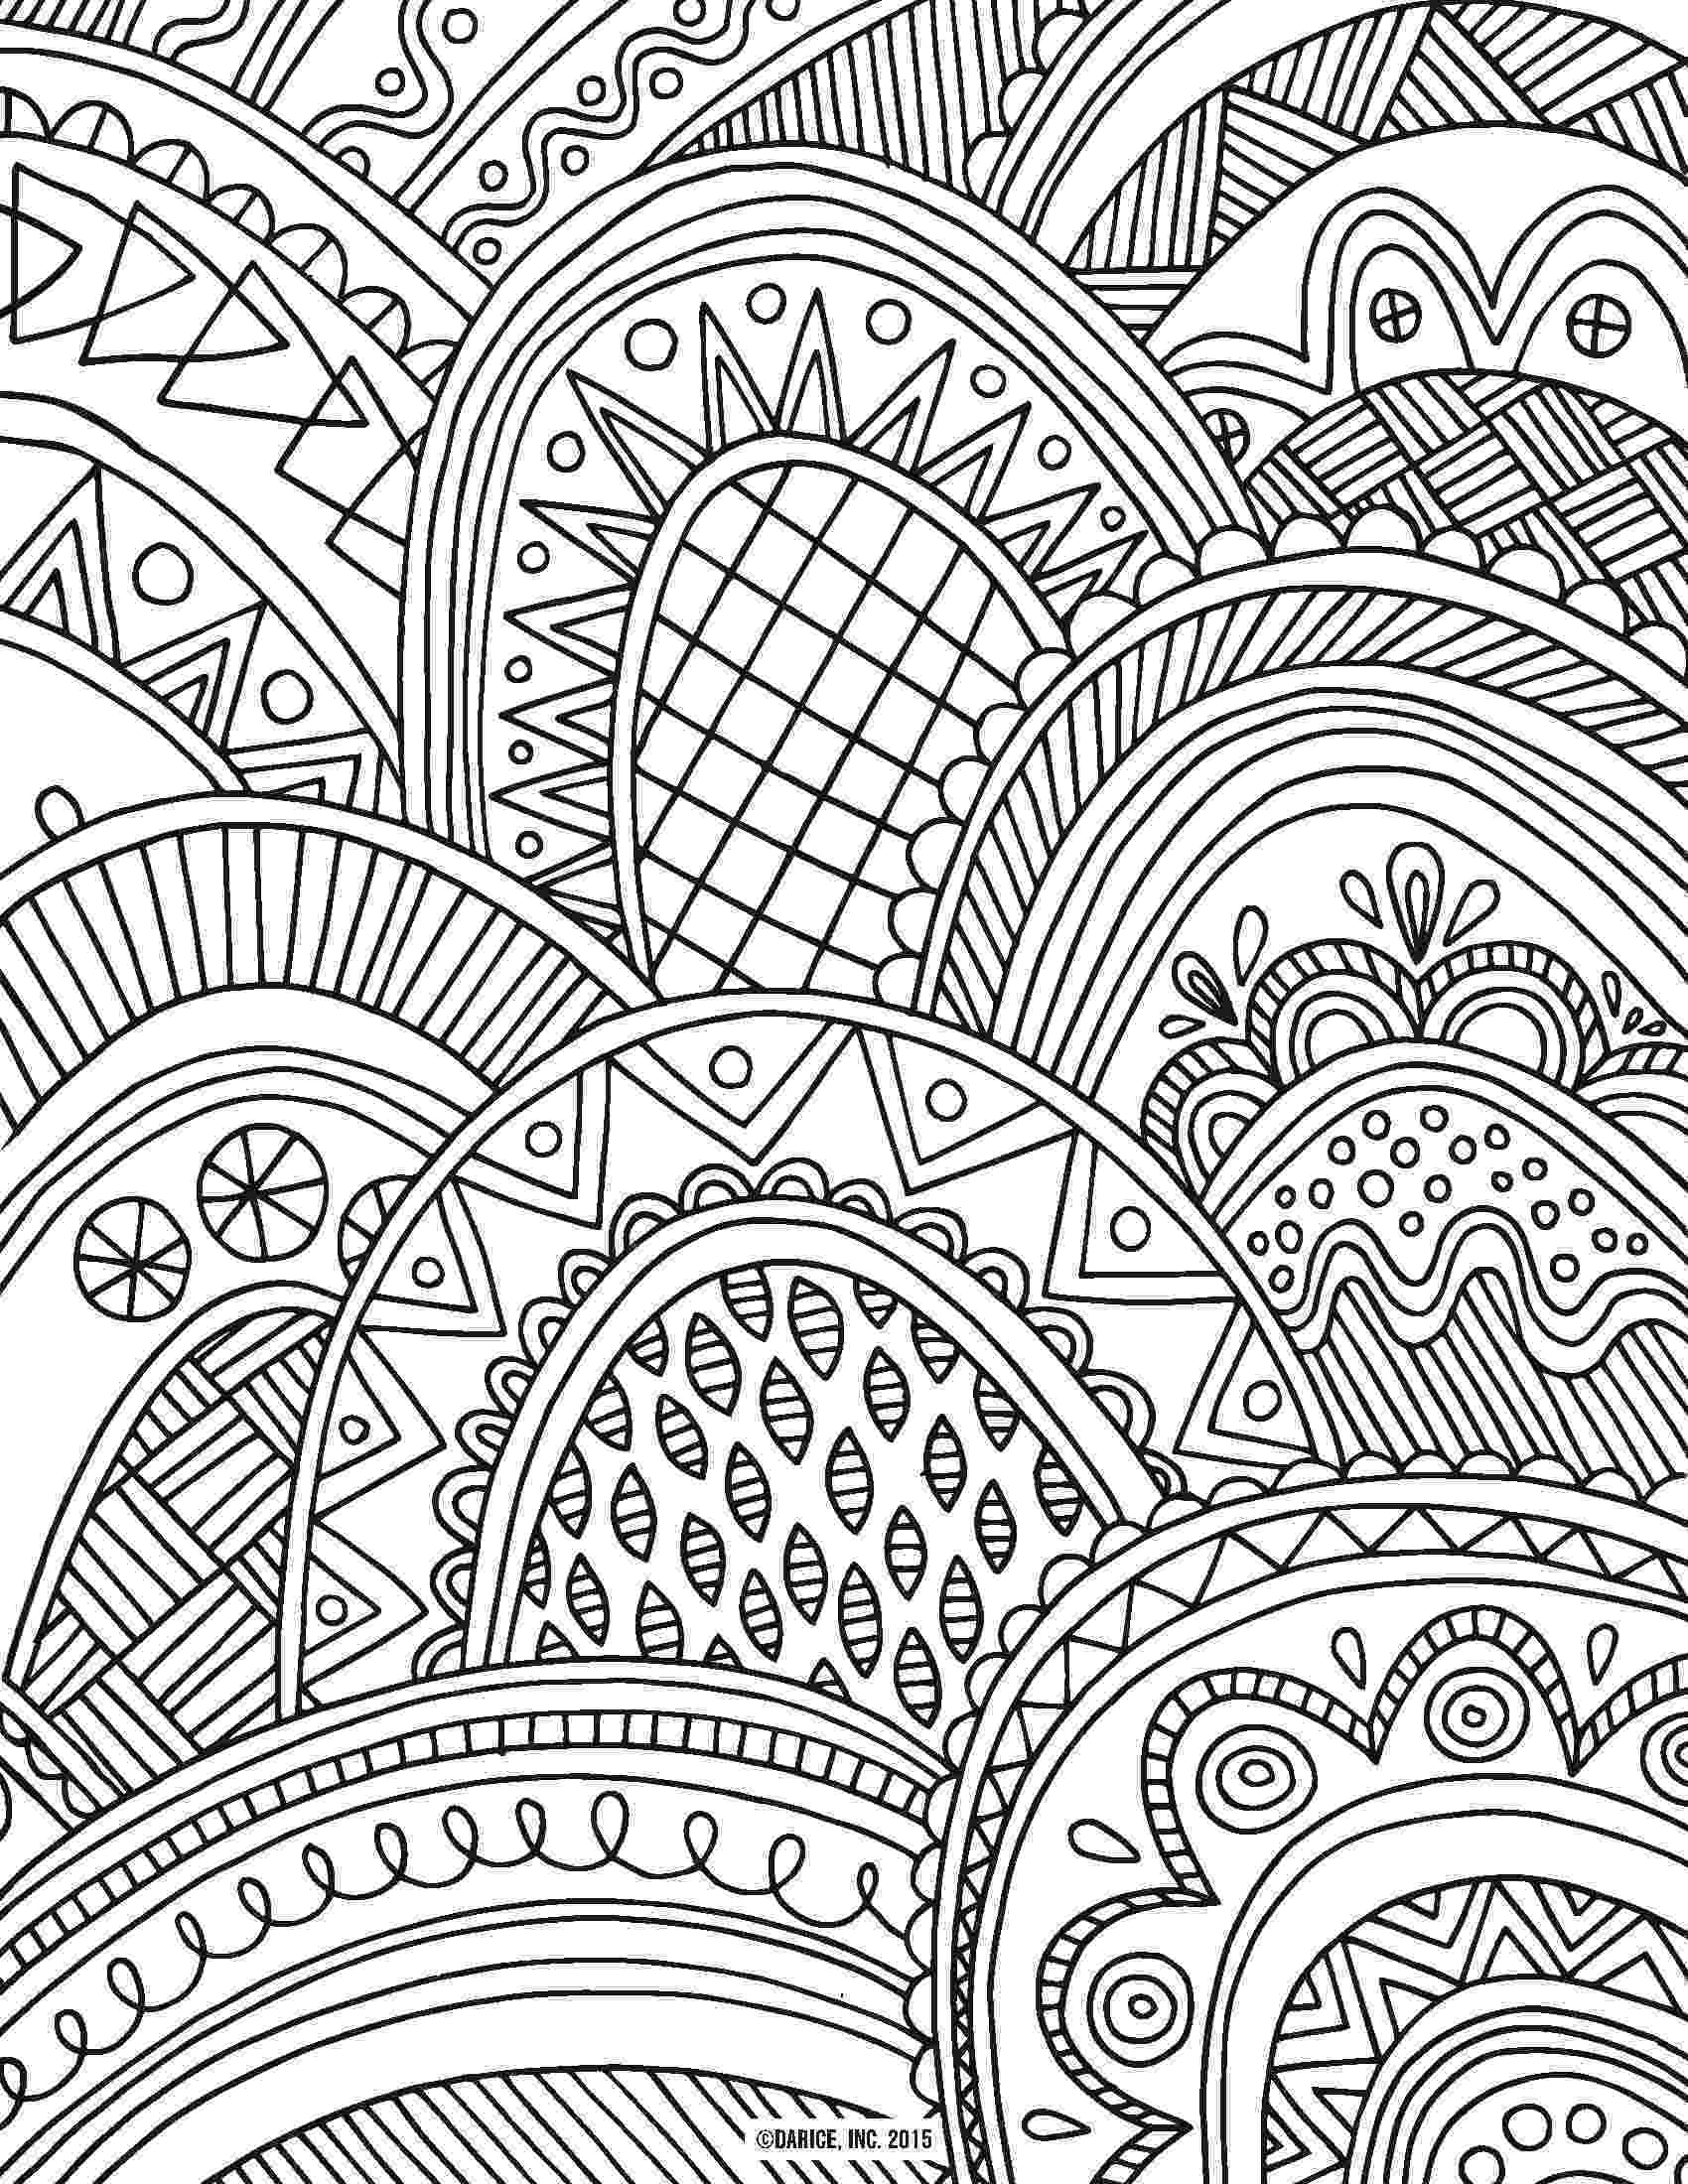 coloring book for adults where to flower with many petals flowers adult coloring pages for adults where coloring book to